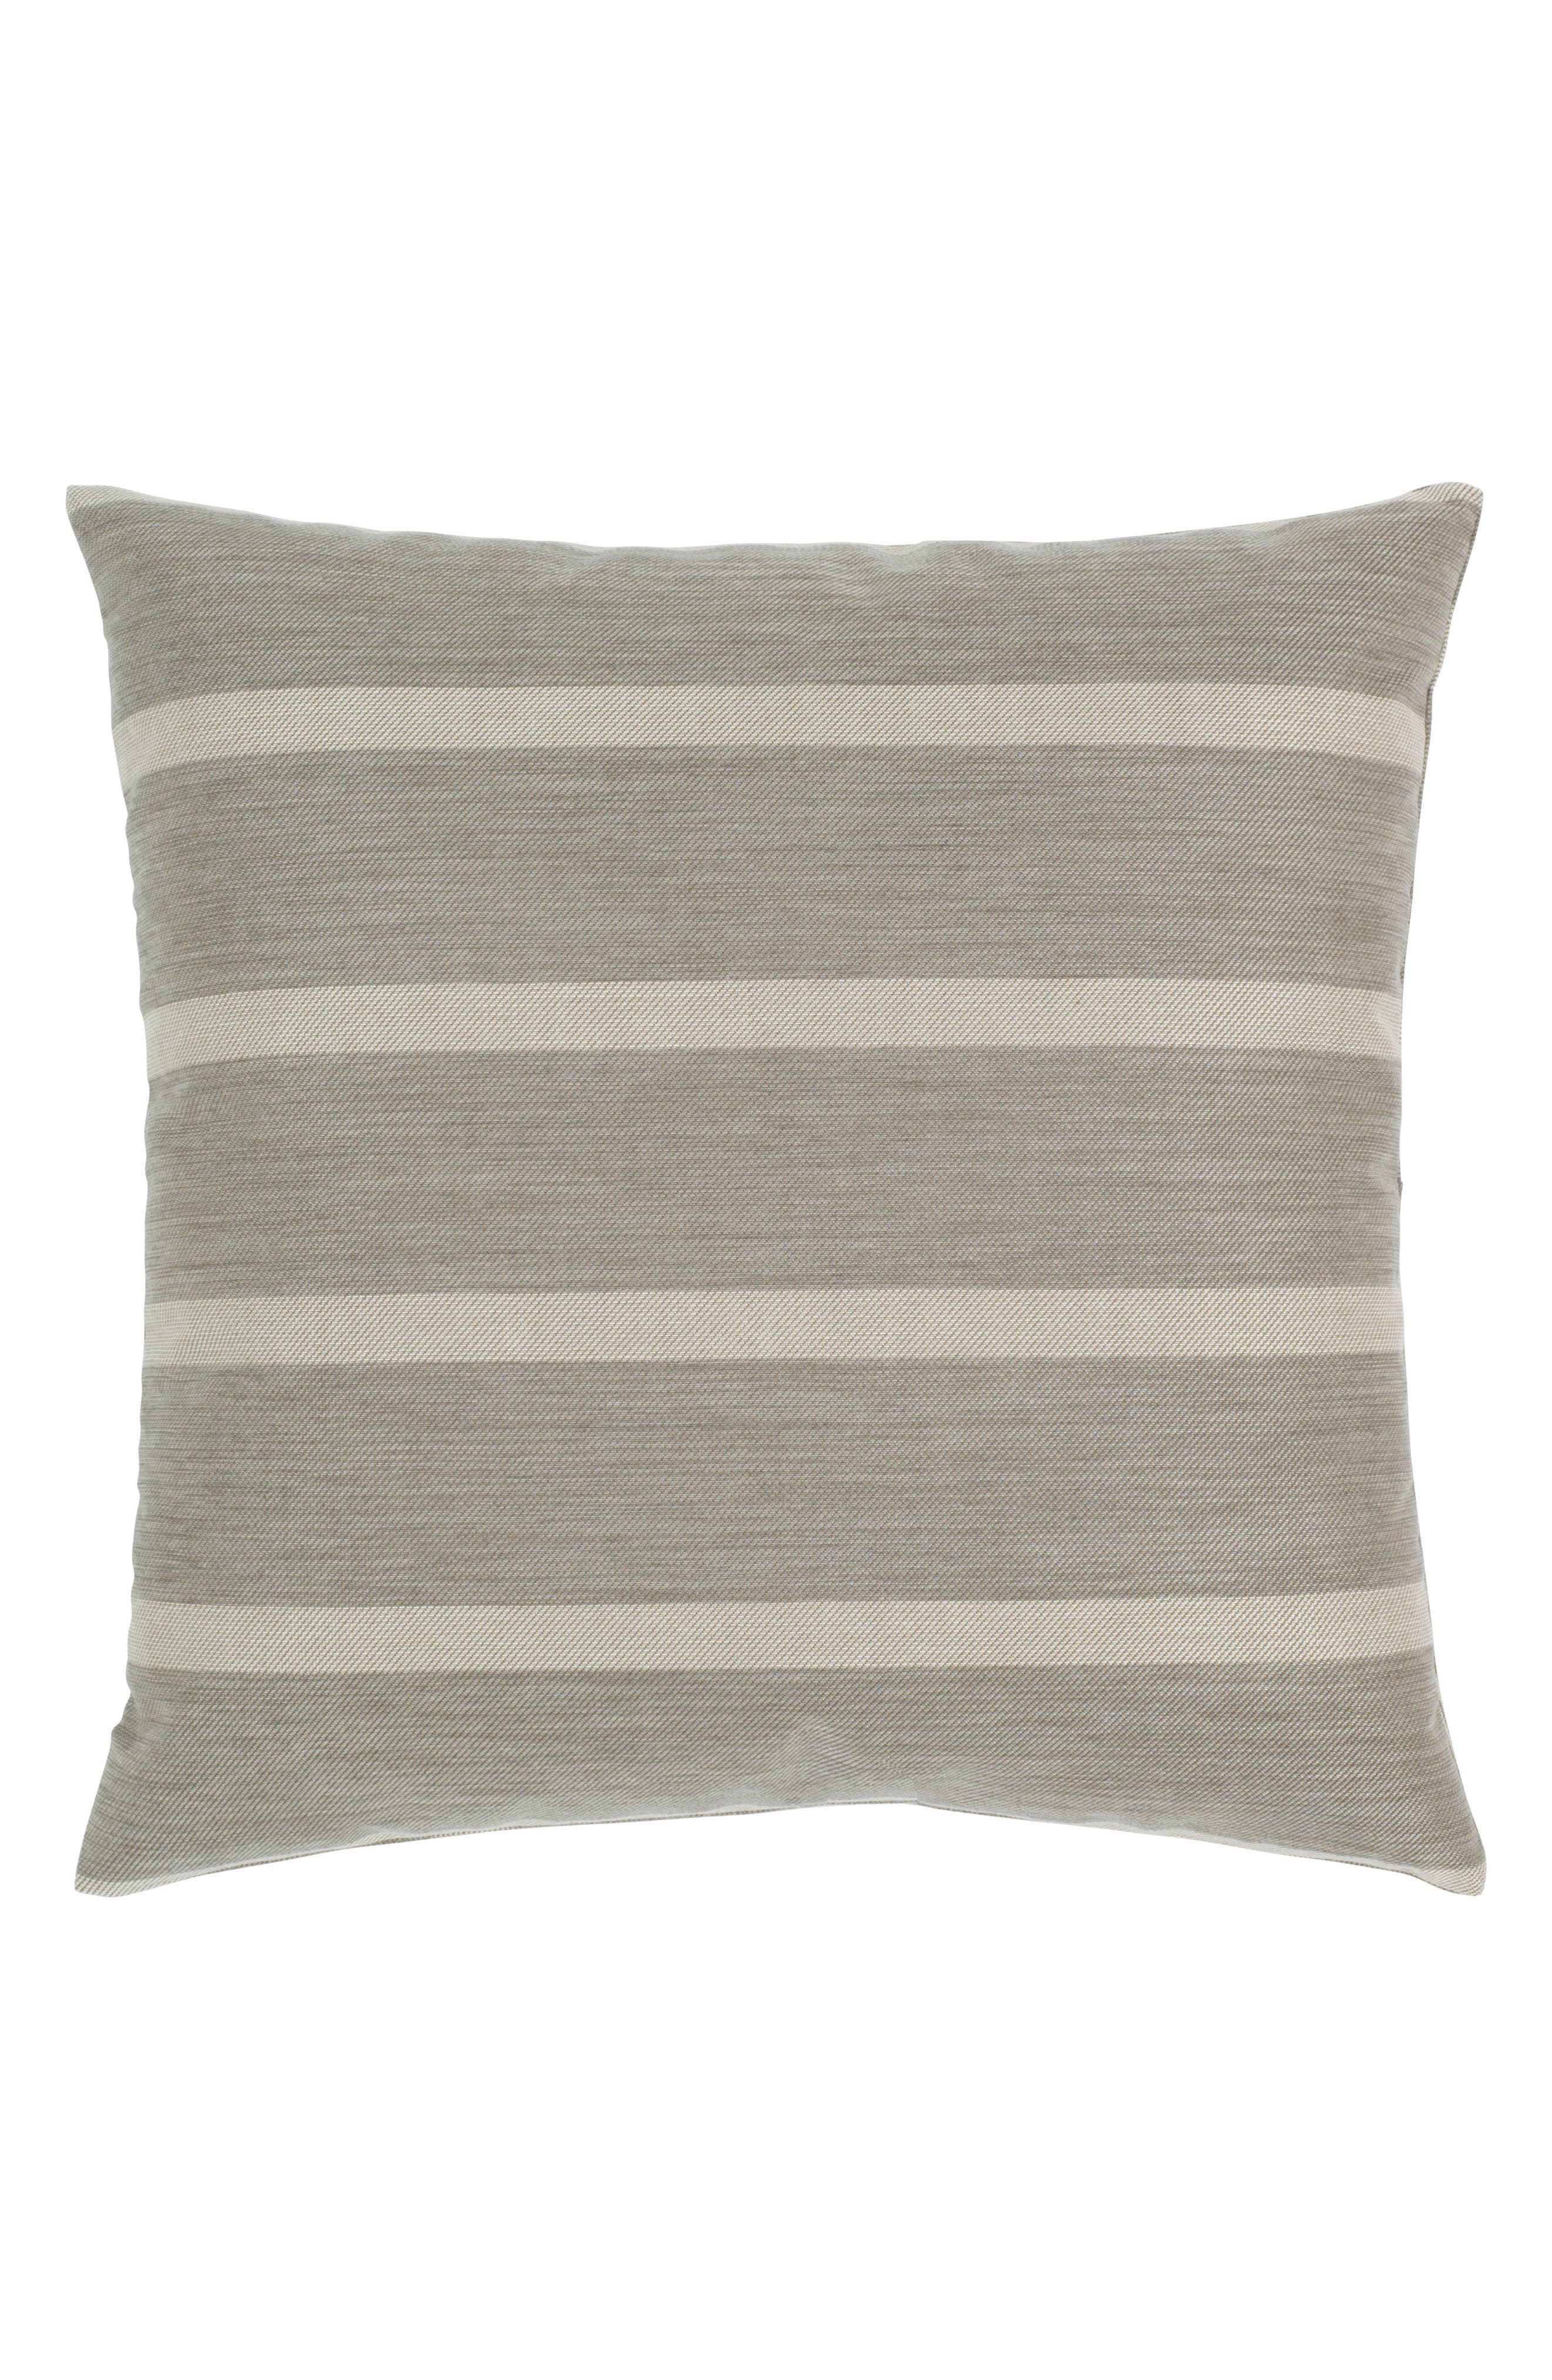 Sparkle Stripe Indoor/Outdoor Accent Pillow,                             Alternate thumbnail 2, color,                             020